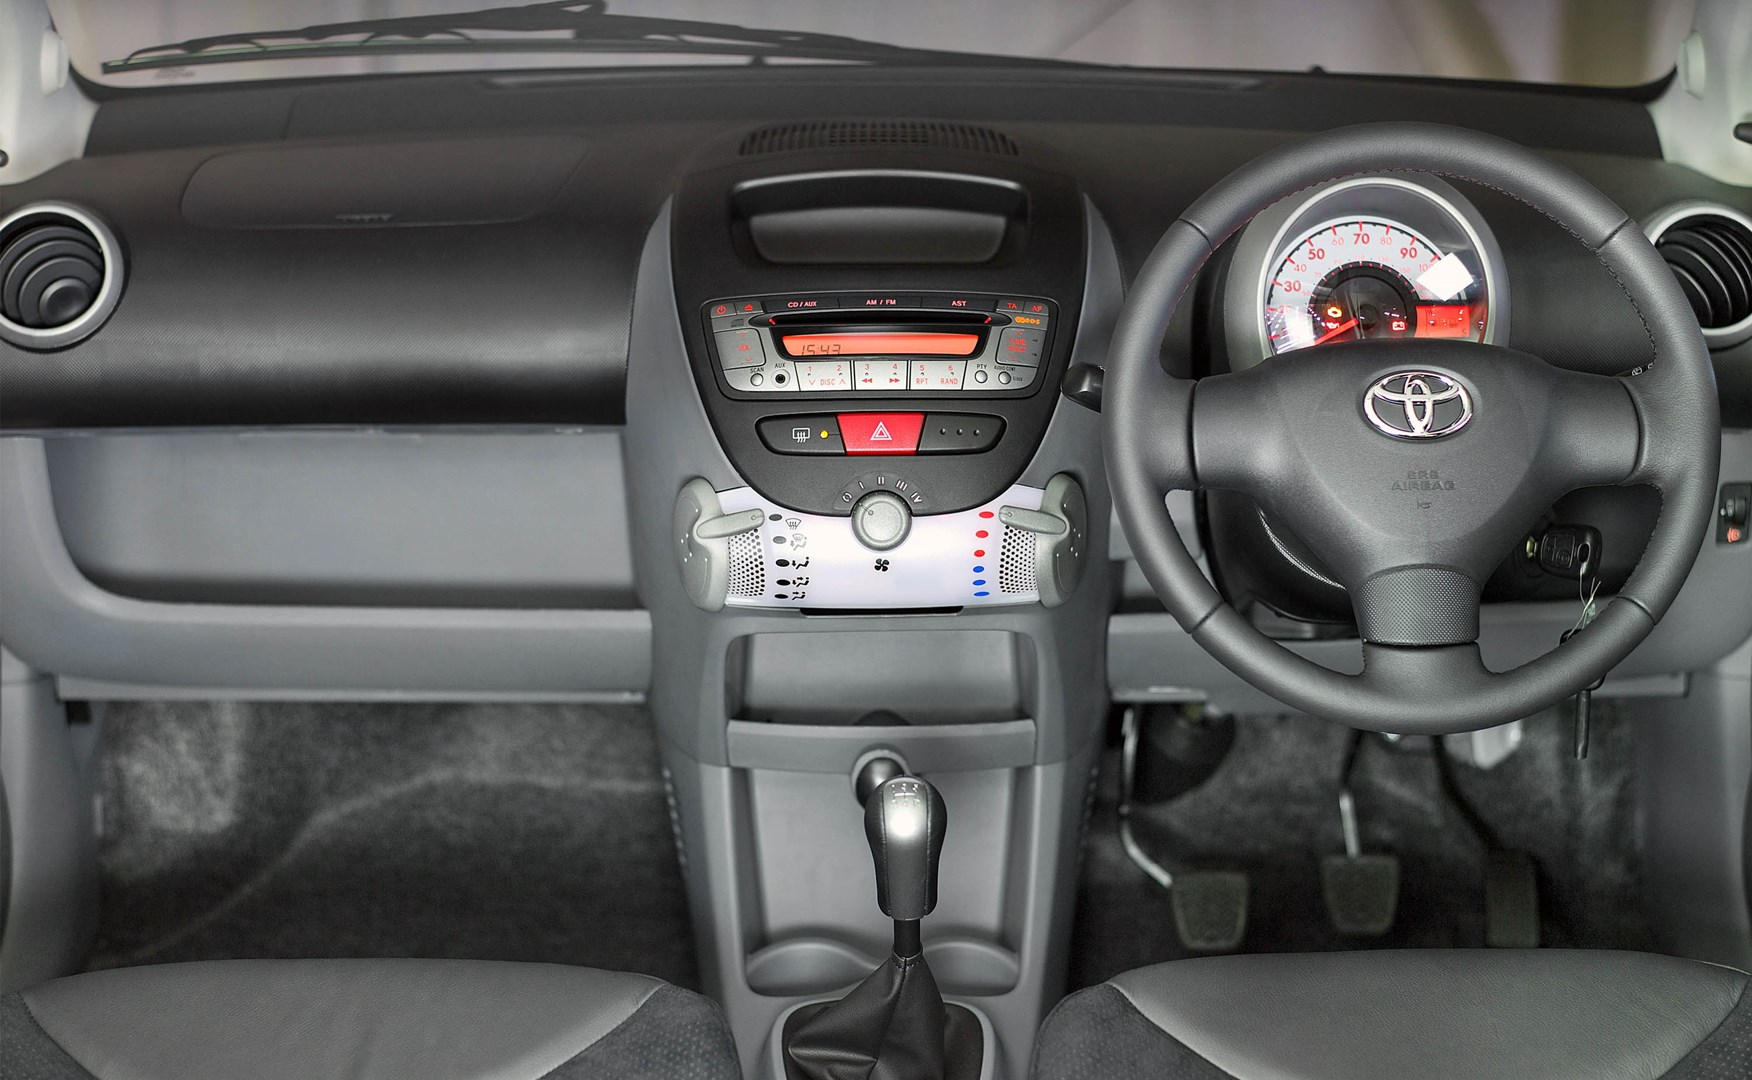 Toyota aygo hatchback review 2005 2014 parkers vanachro Choice Image